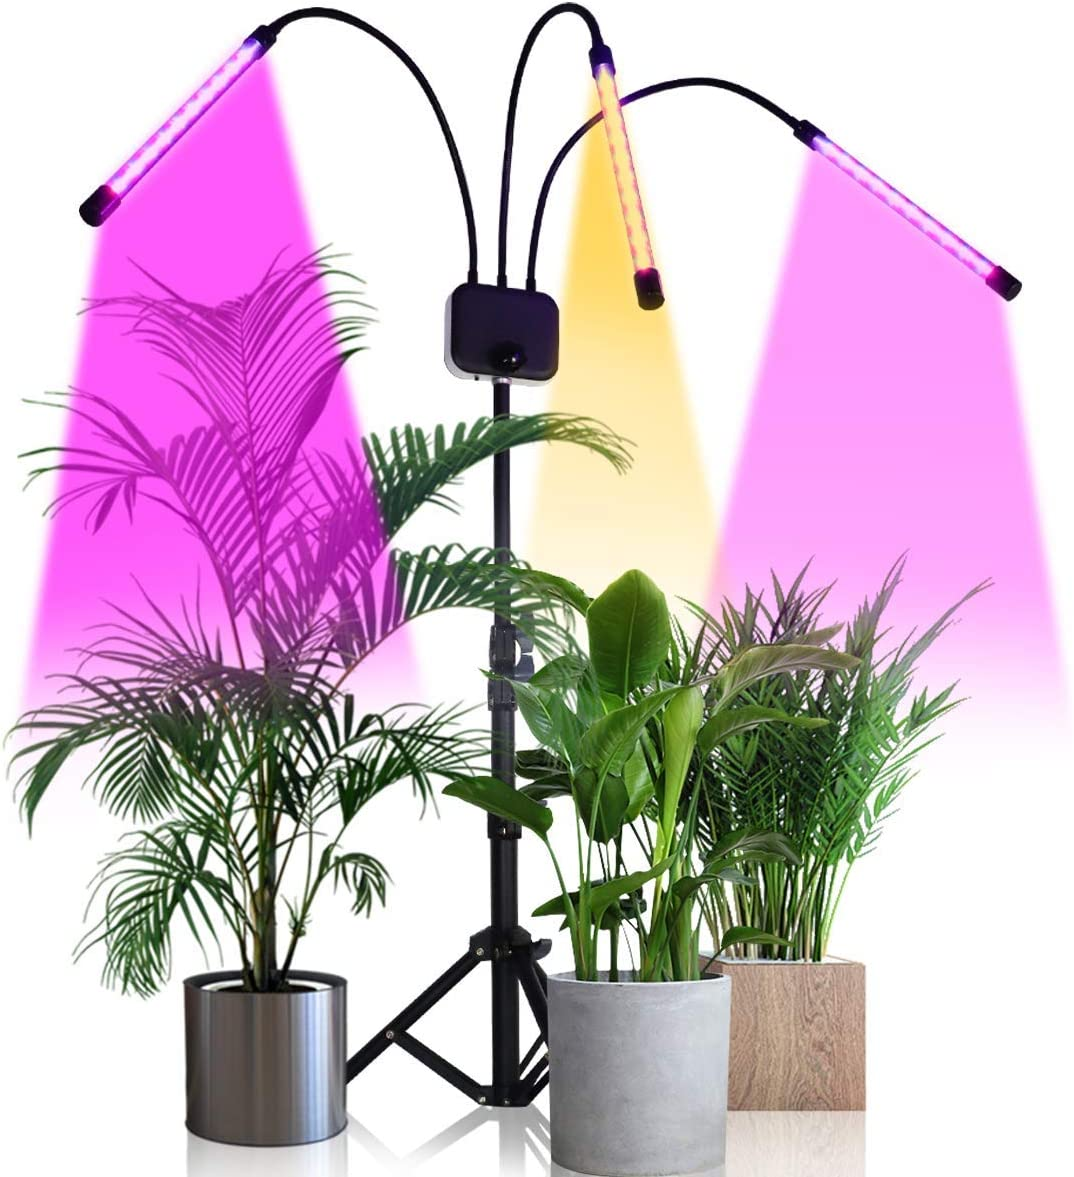 Grow Light with Stand,GHodec Tri-Head 60W Floor Plant Lights for Indoor Plants, Tripod Stand Adjustable 15-48 in,3 9 12H Timer 3 Modes